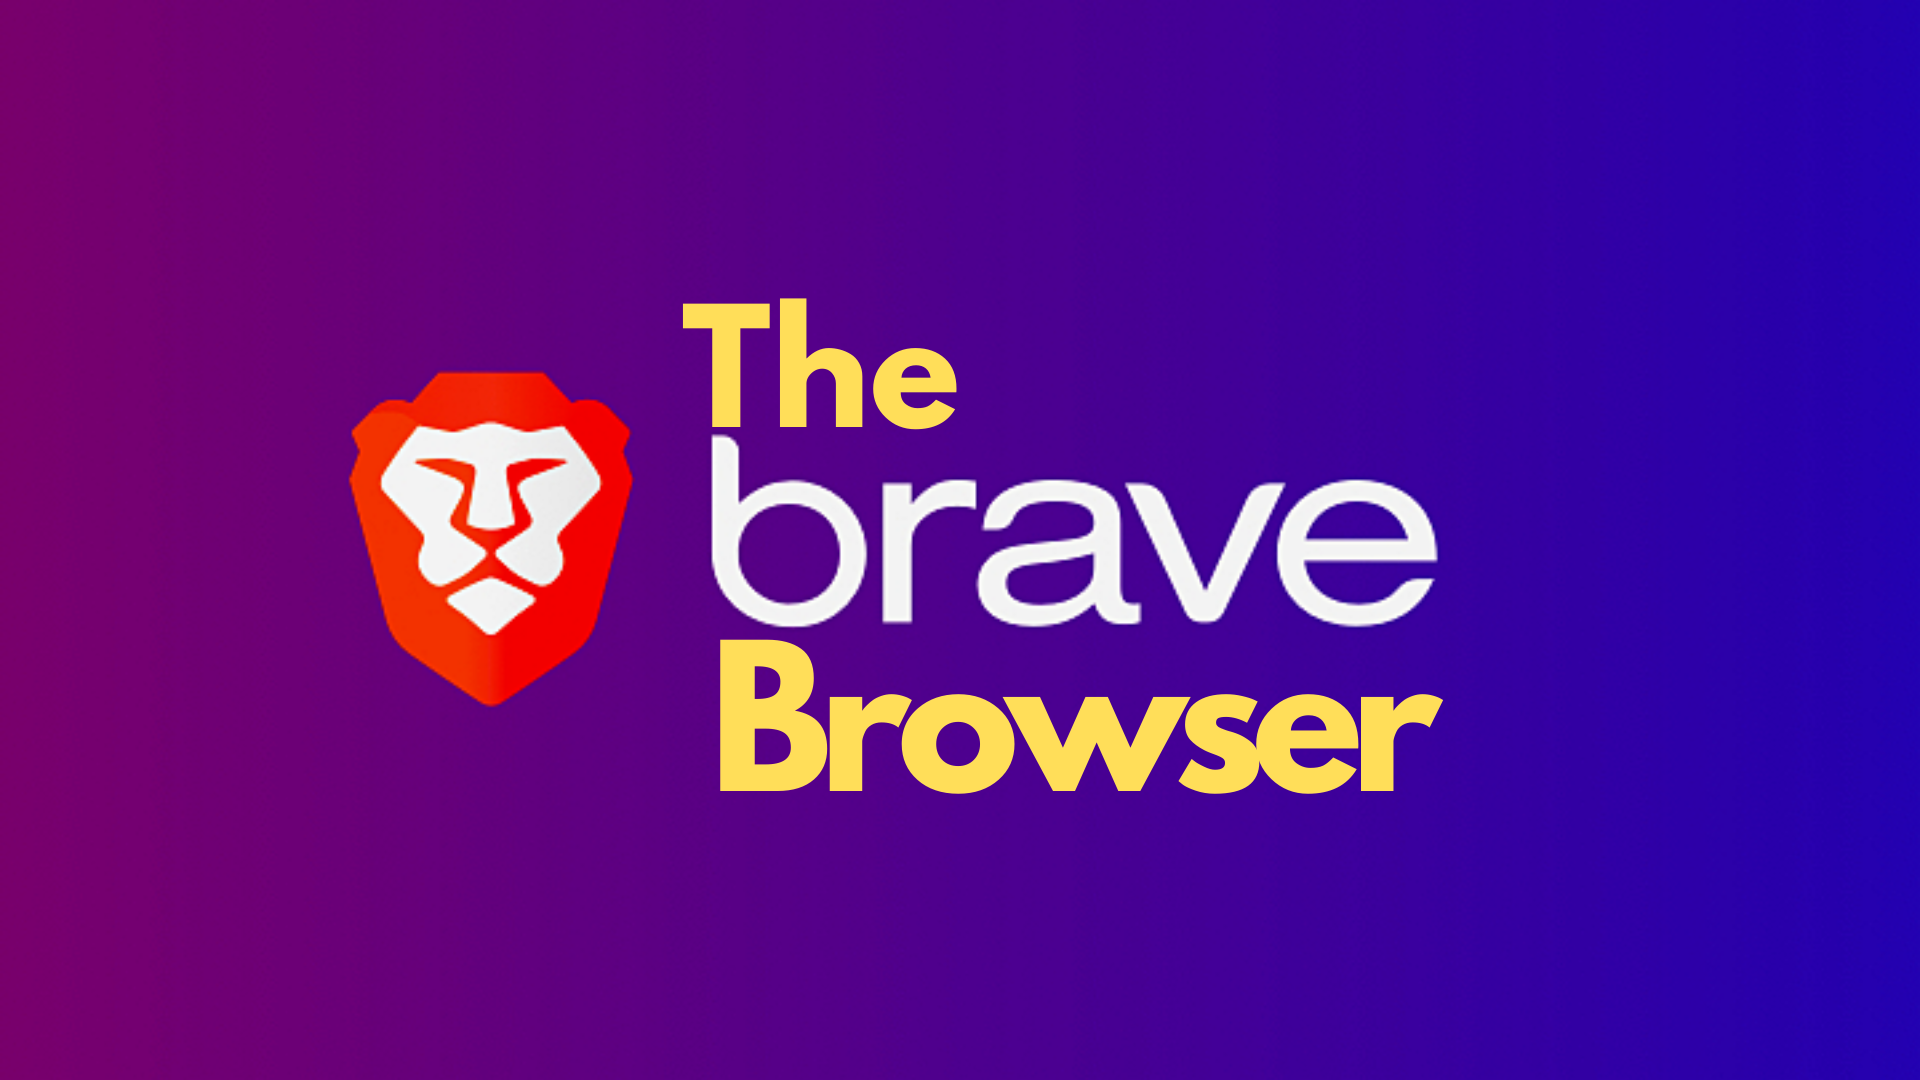 How Brave Browser Works